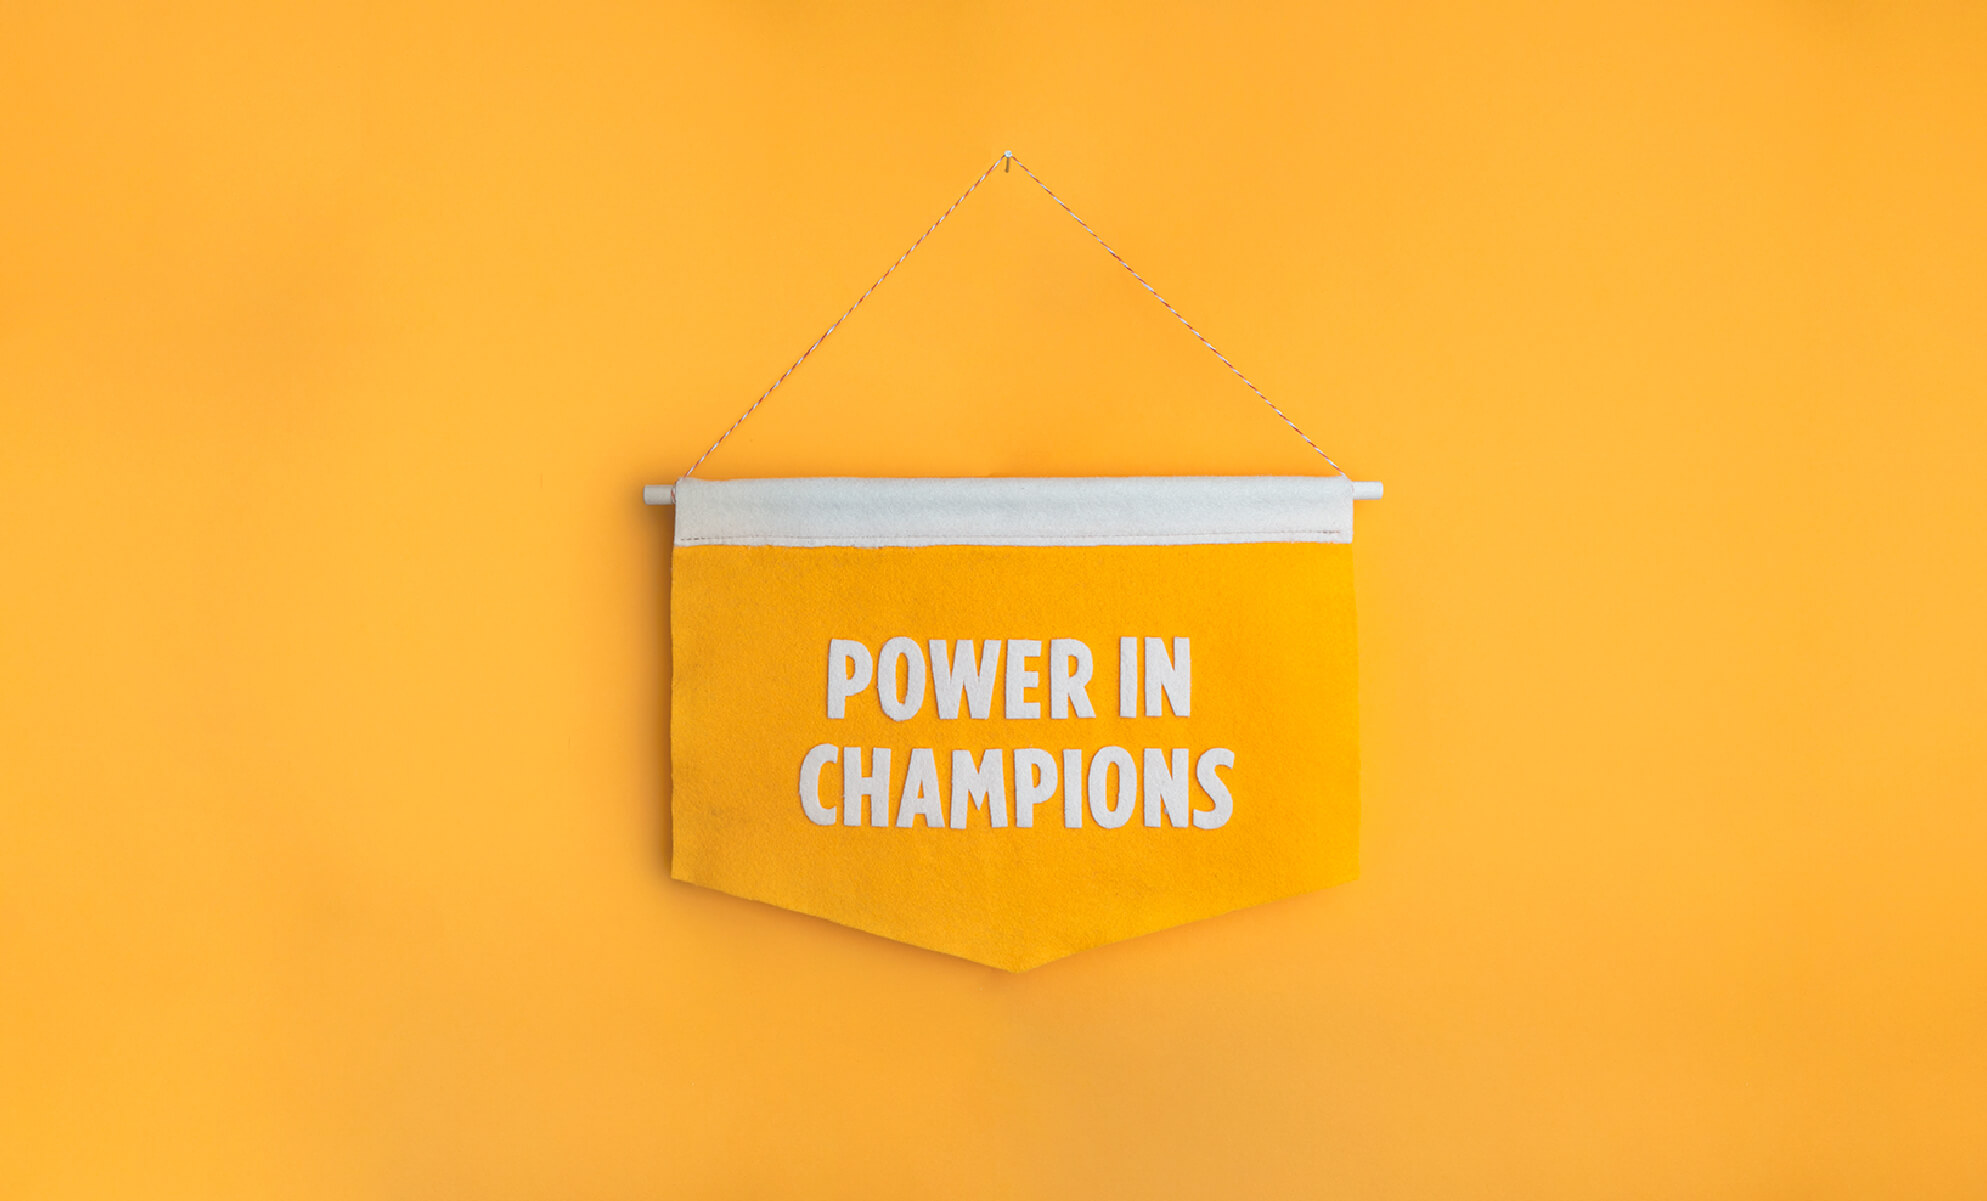 """Yellow felt banner with white felt text, """"Power in champions,"""" against a yellow wall; image by BrainStorm, Inc. 2020@2x-100"""